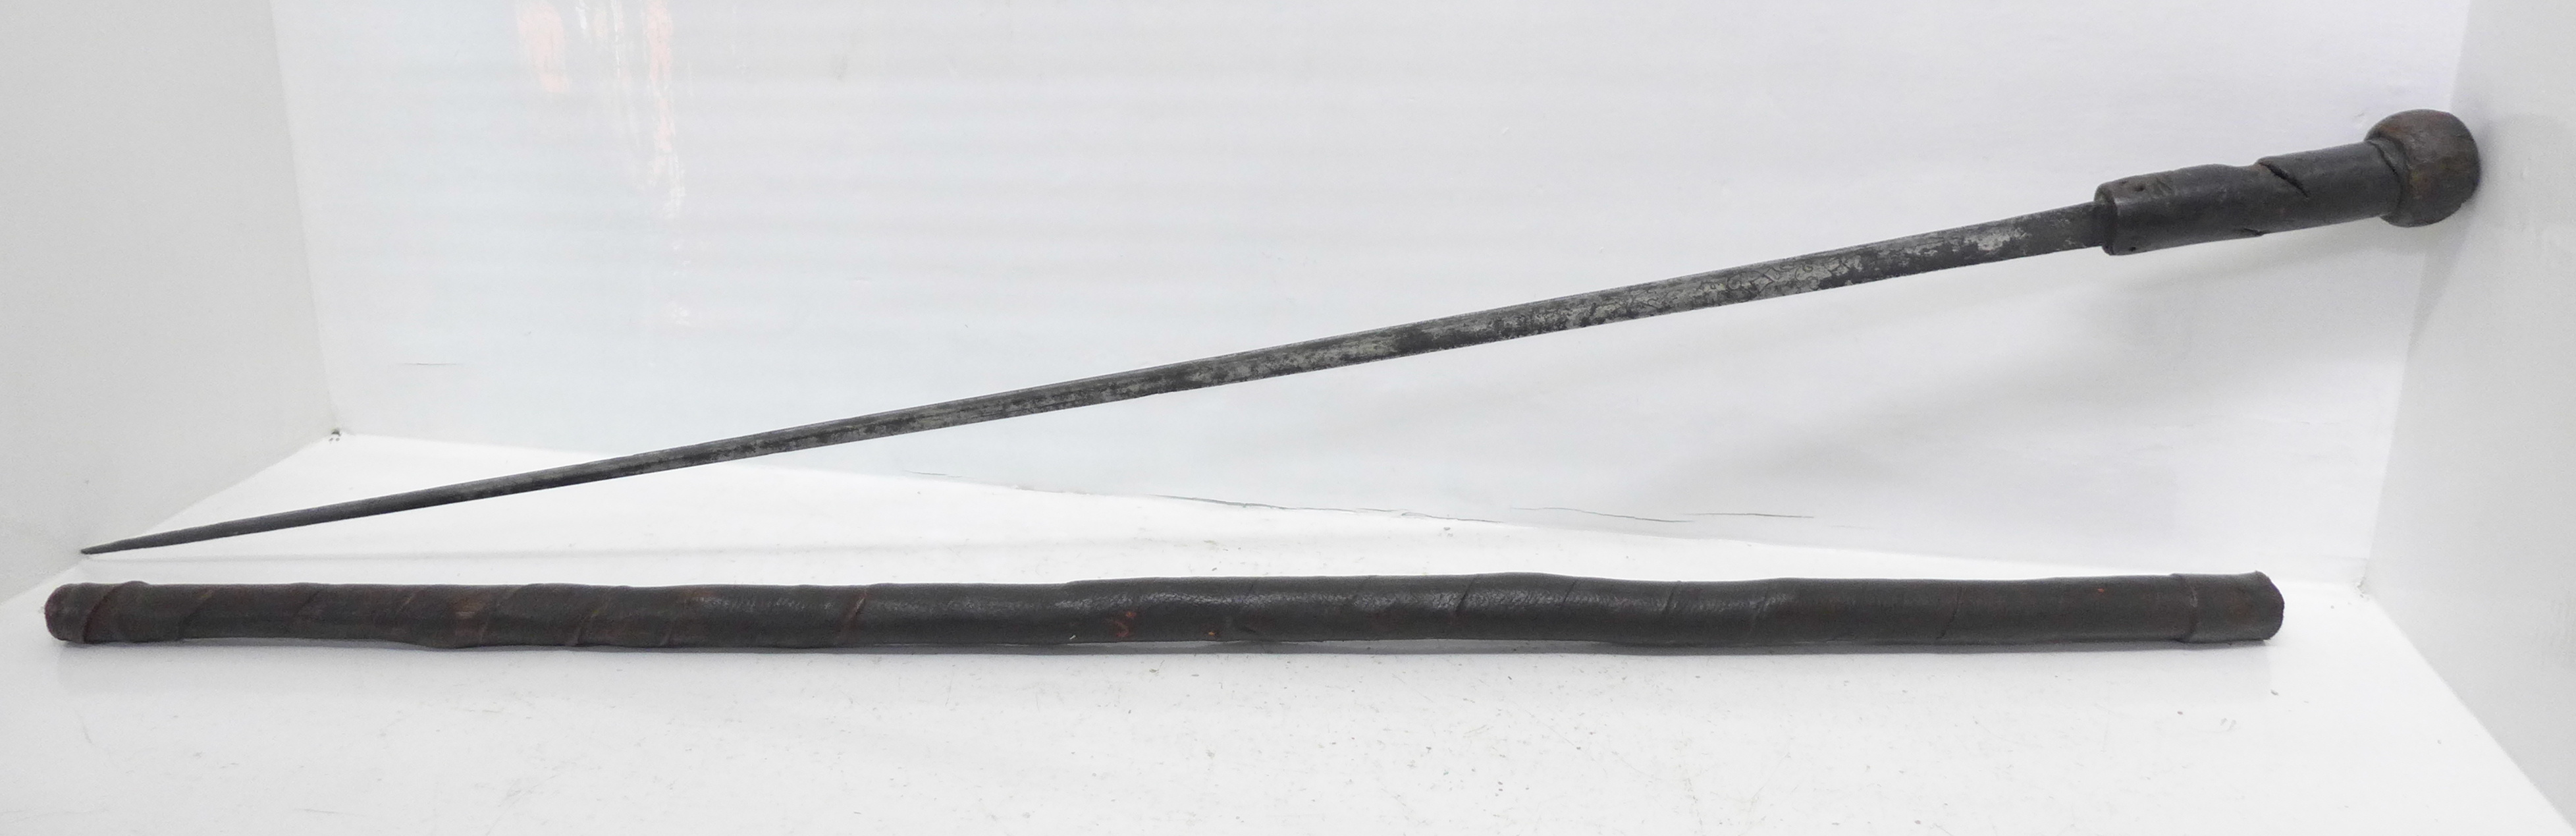 An early 19th Century swordstick, with decorated blade and leather scabbard, circa 1820